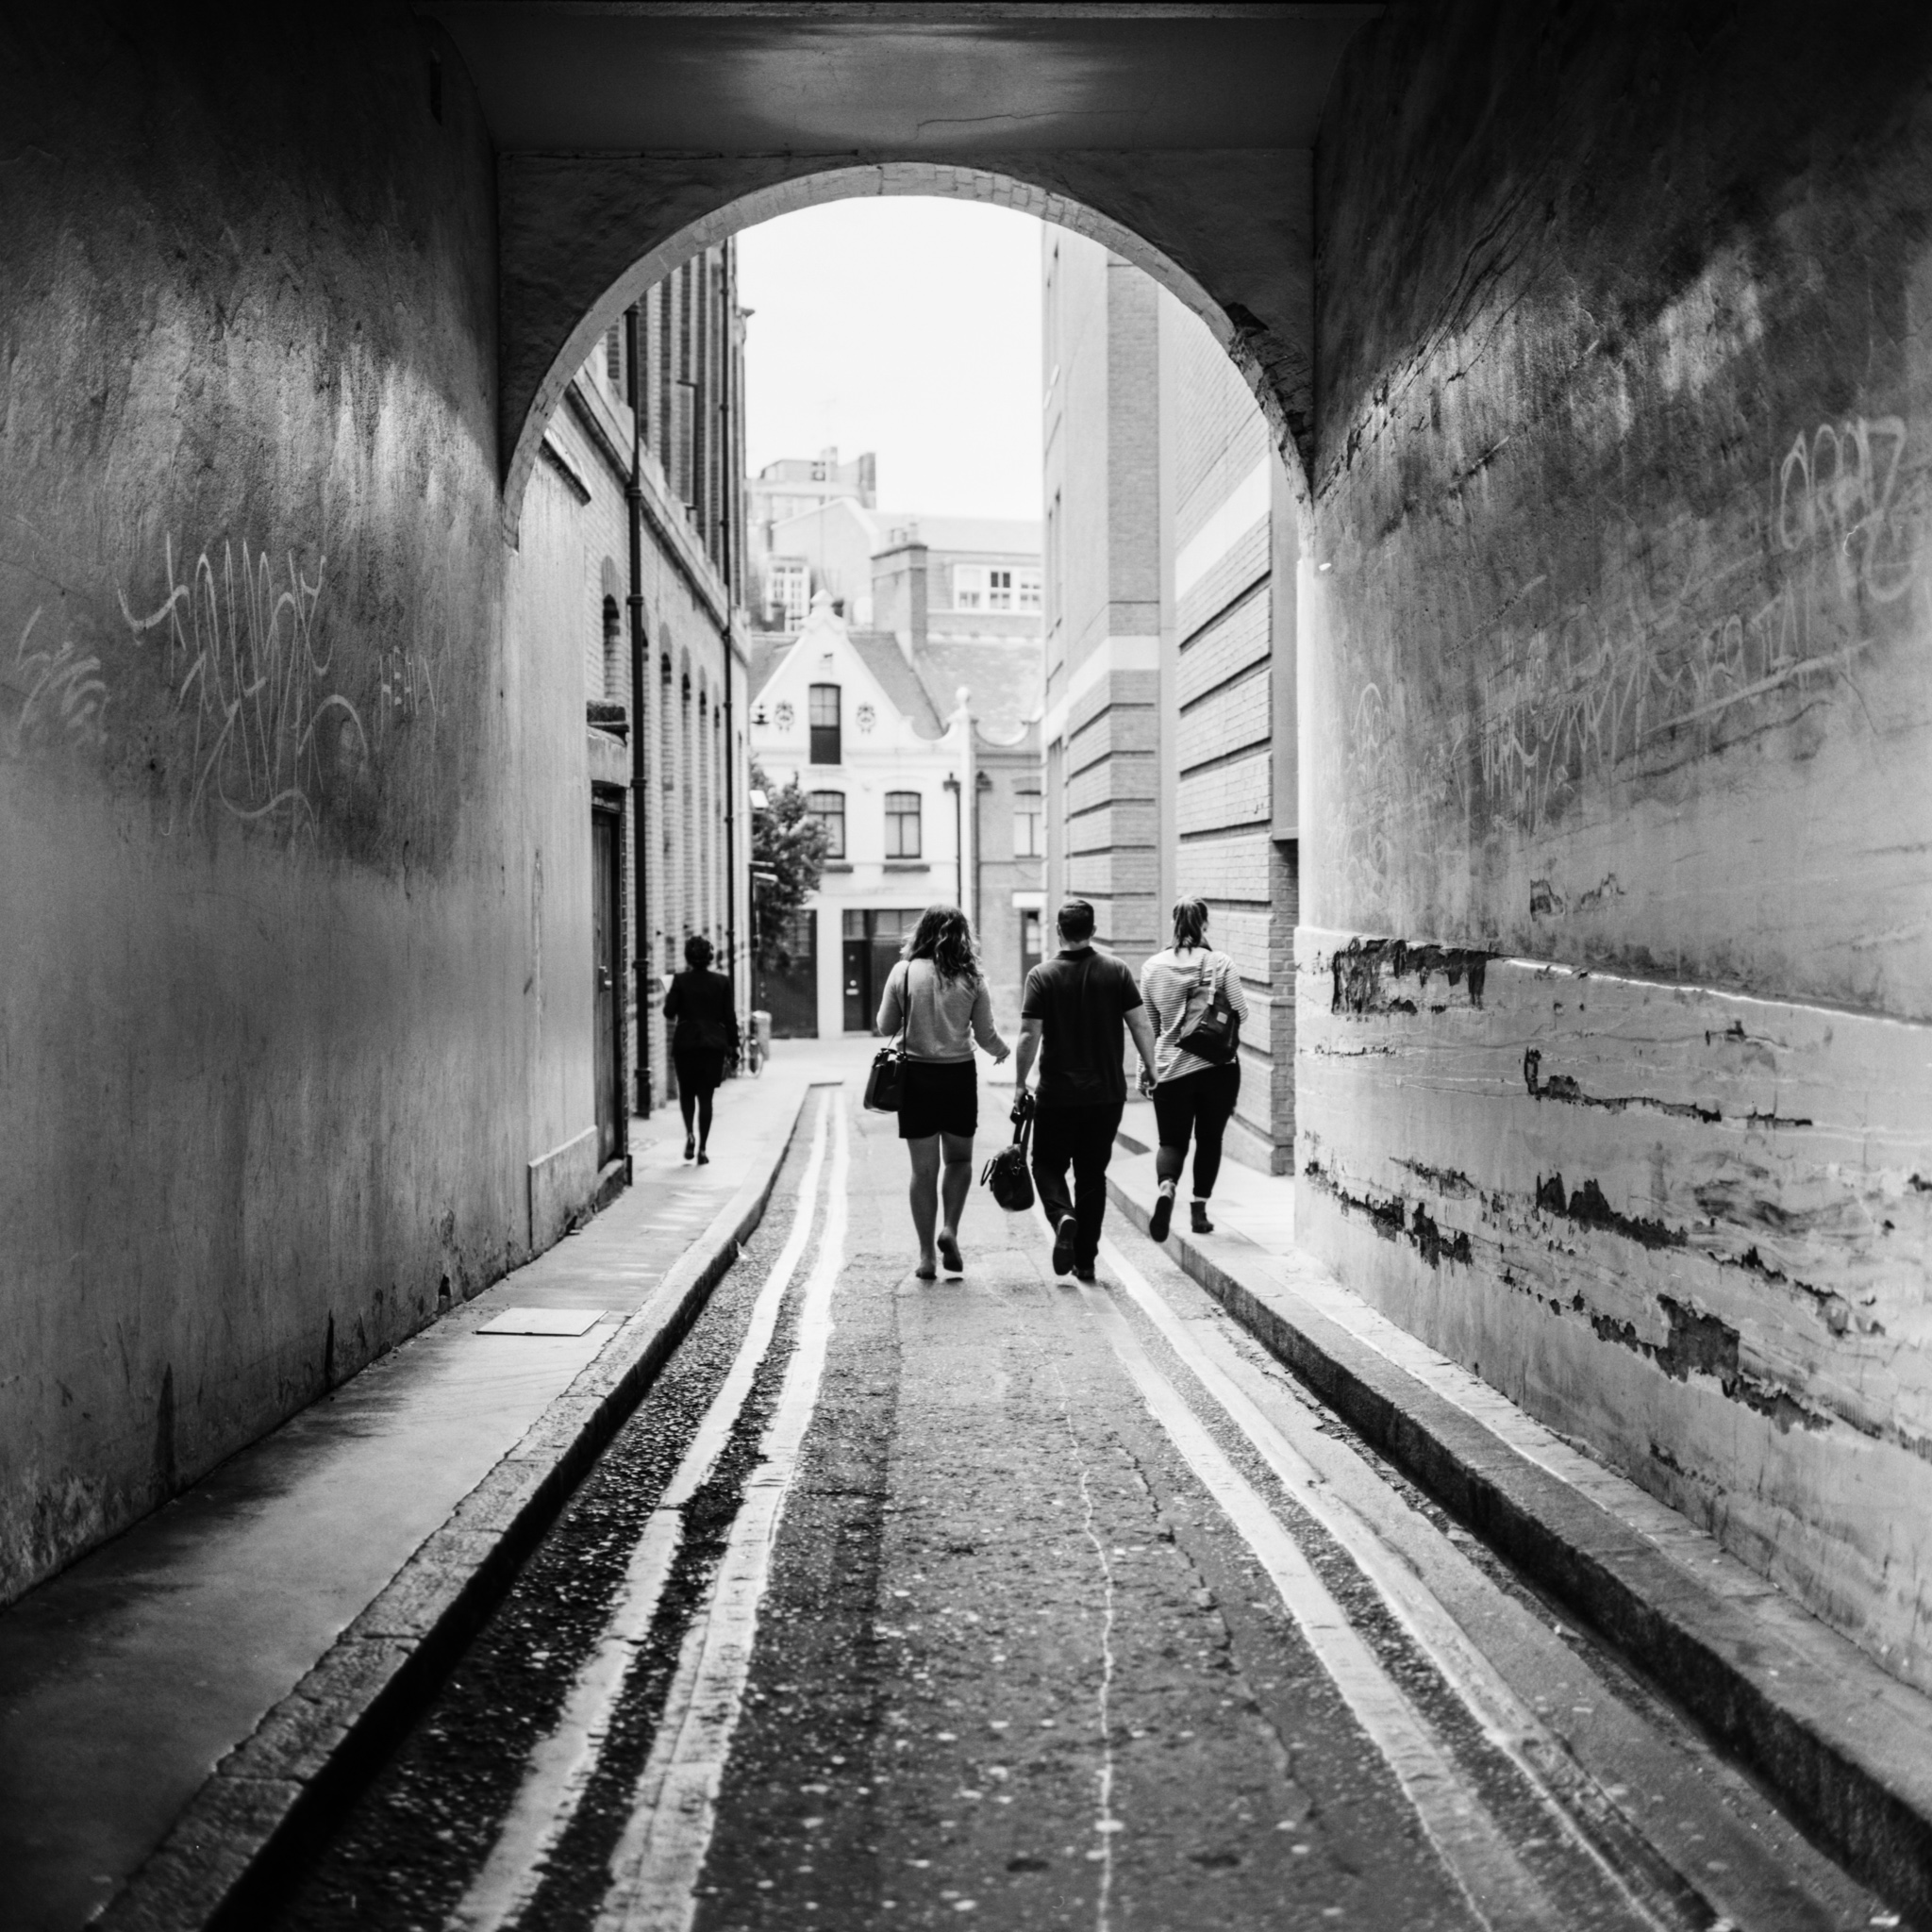 To the Other Side, London, UK, 2016